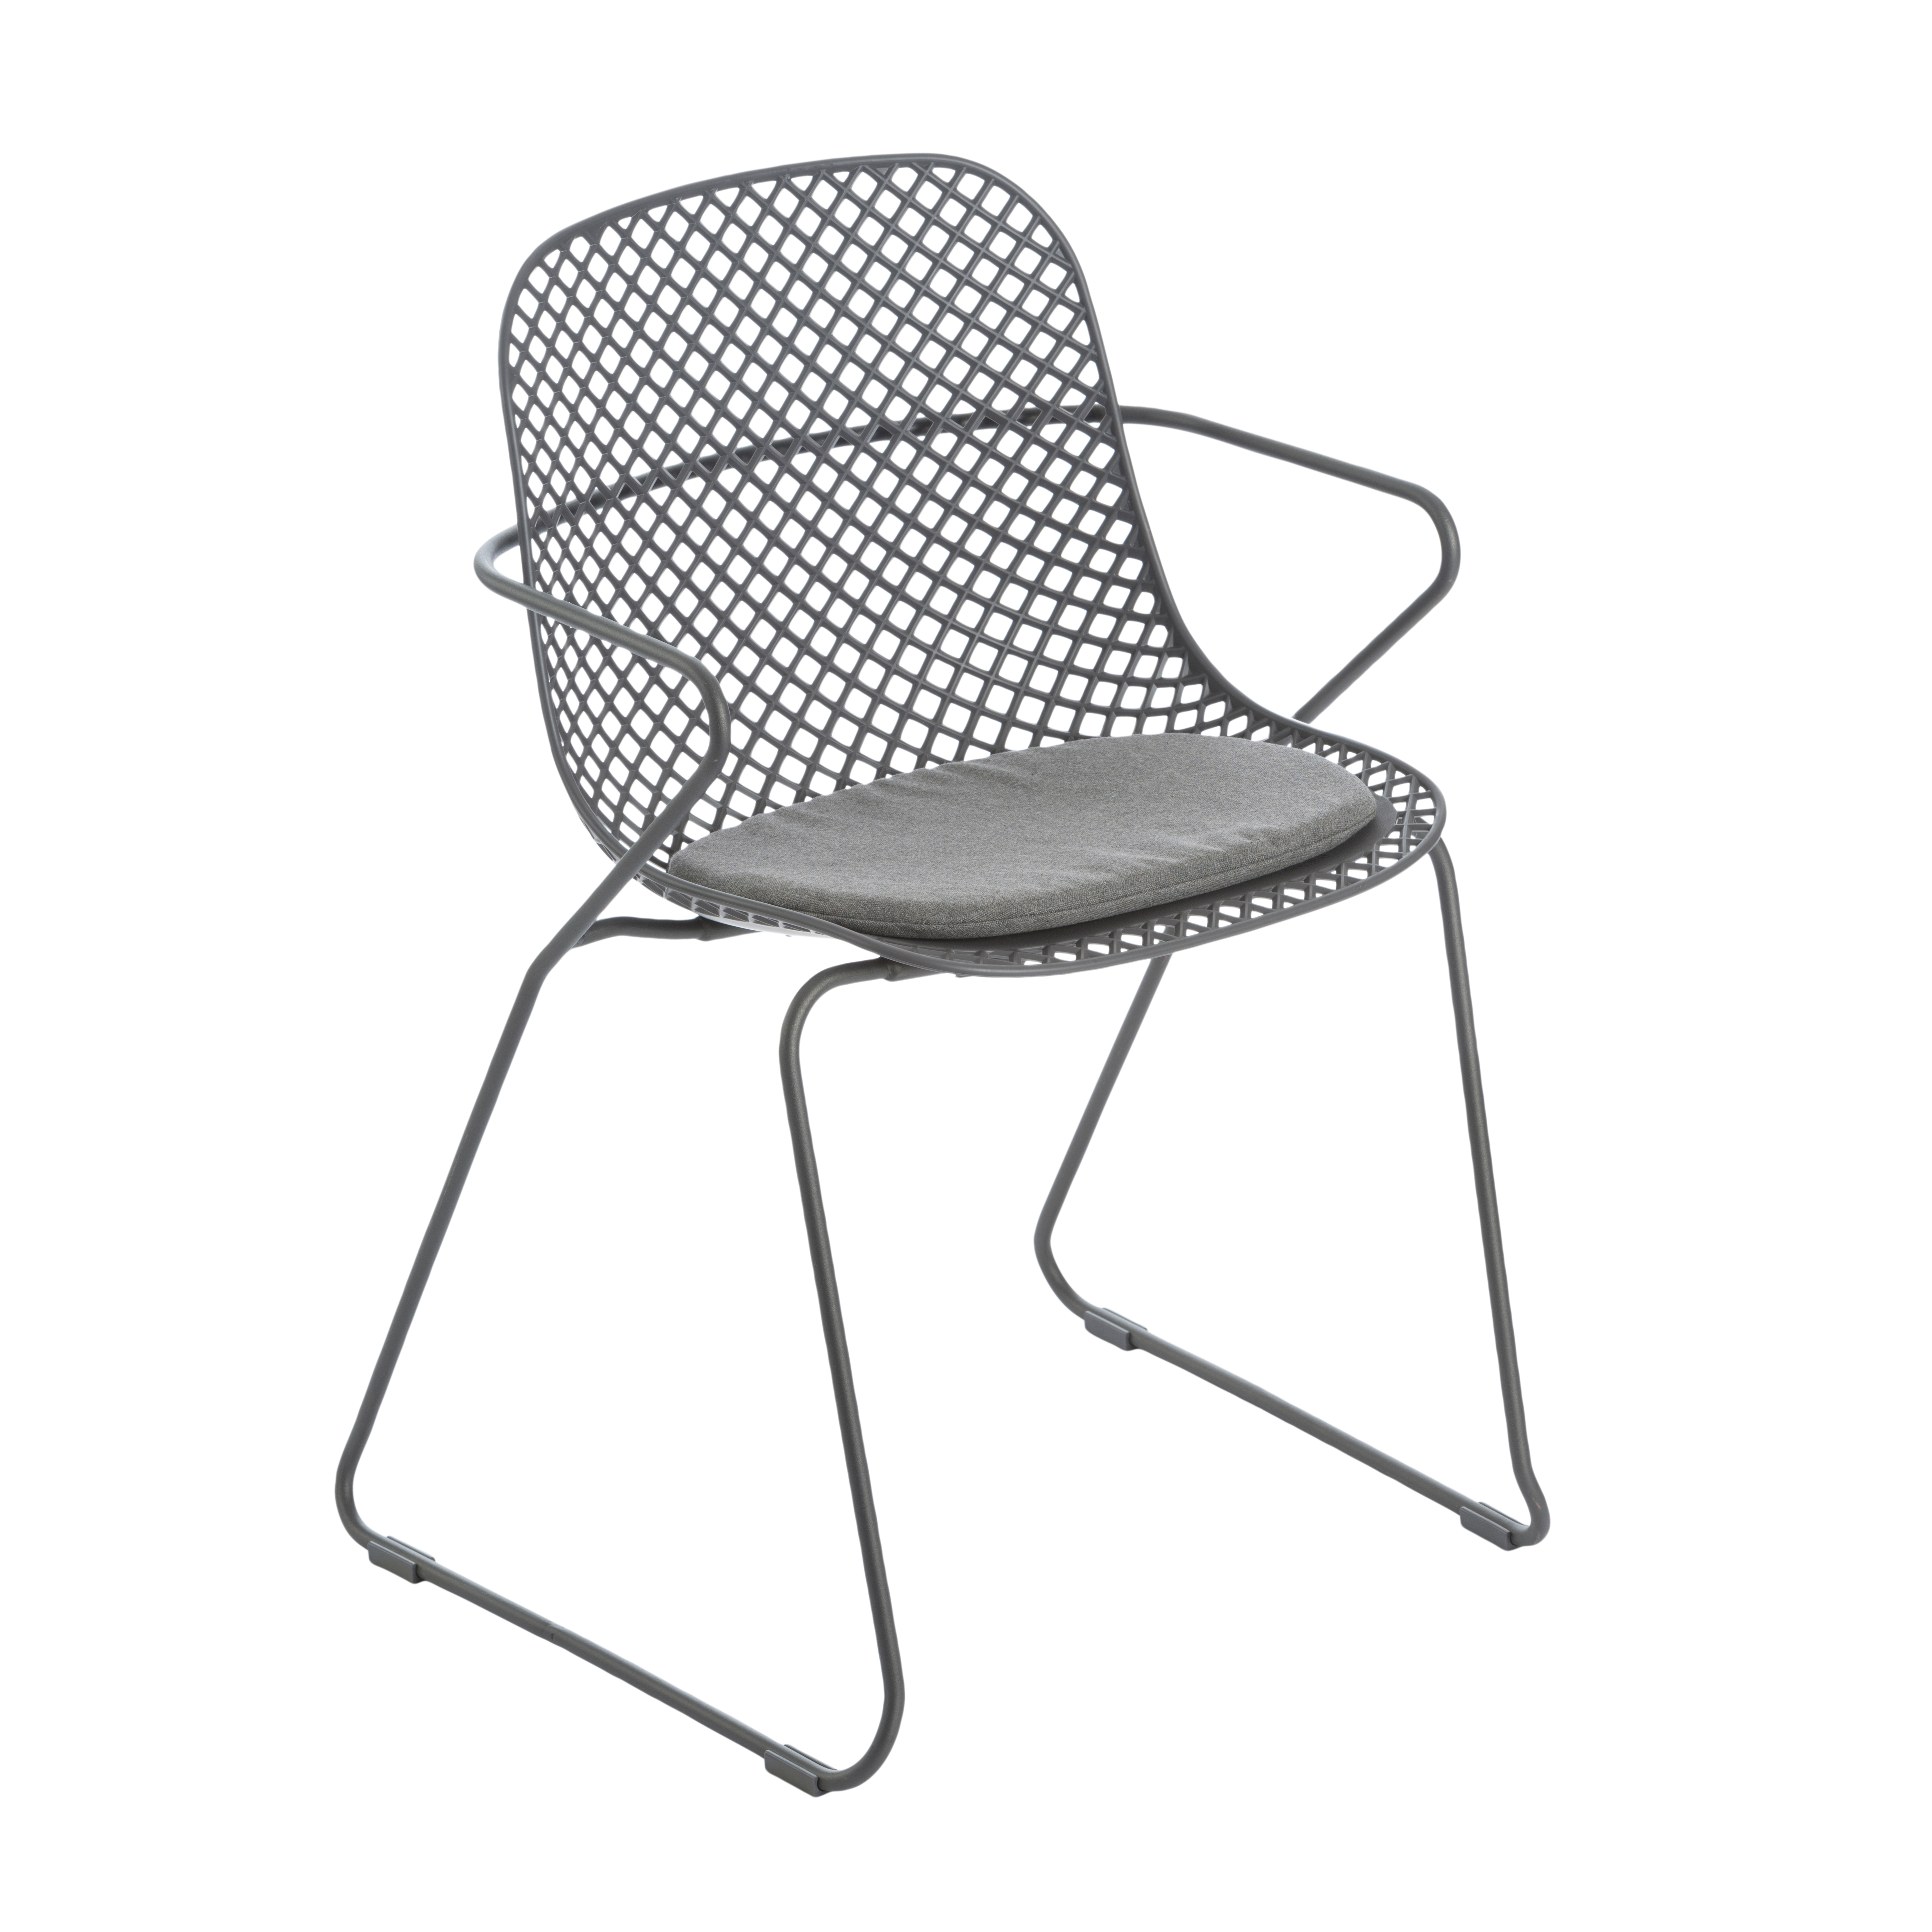 Grosfillex US136713 chair, armchair, stacking, outdoor